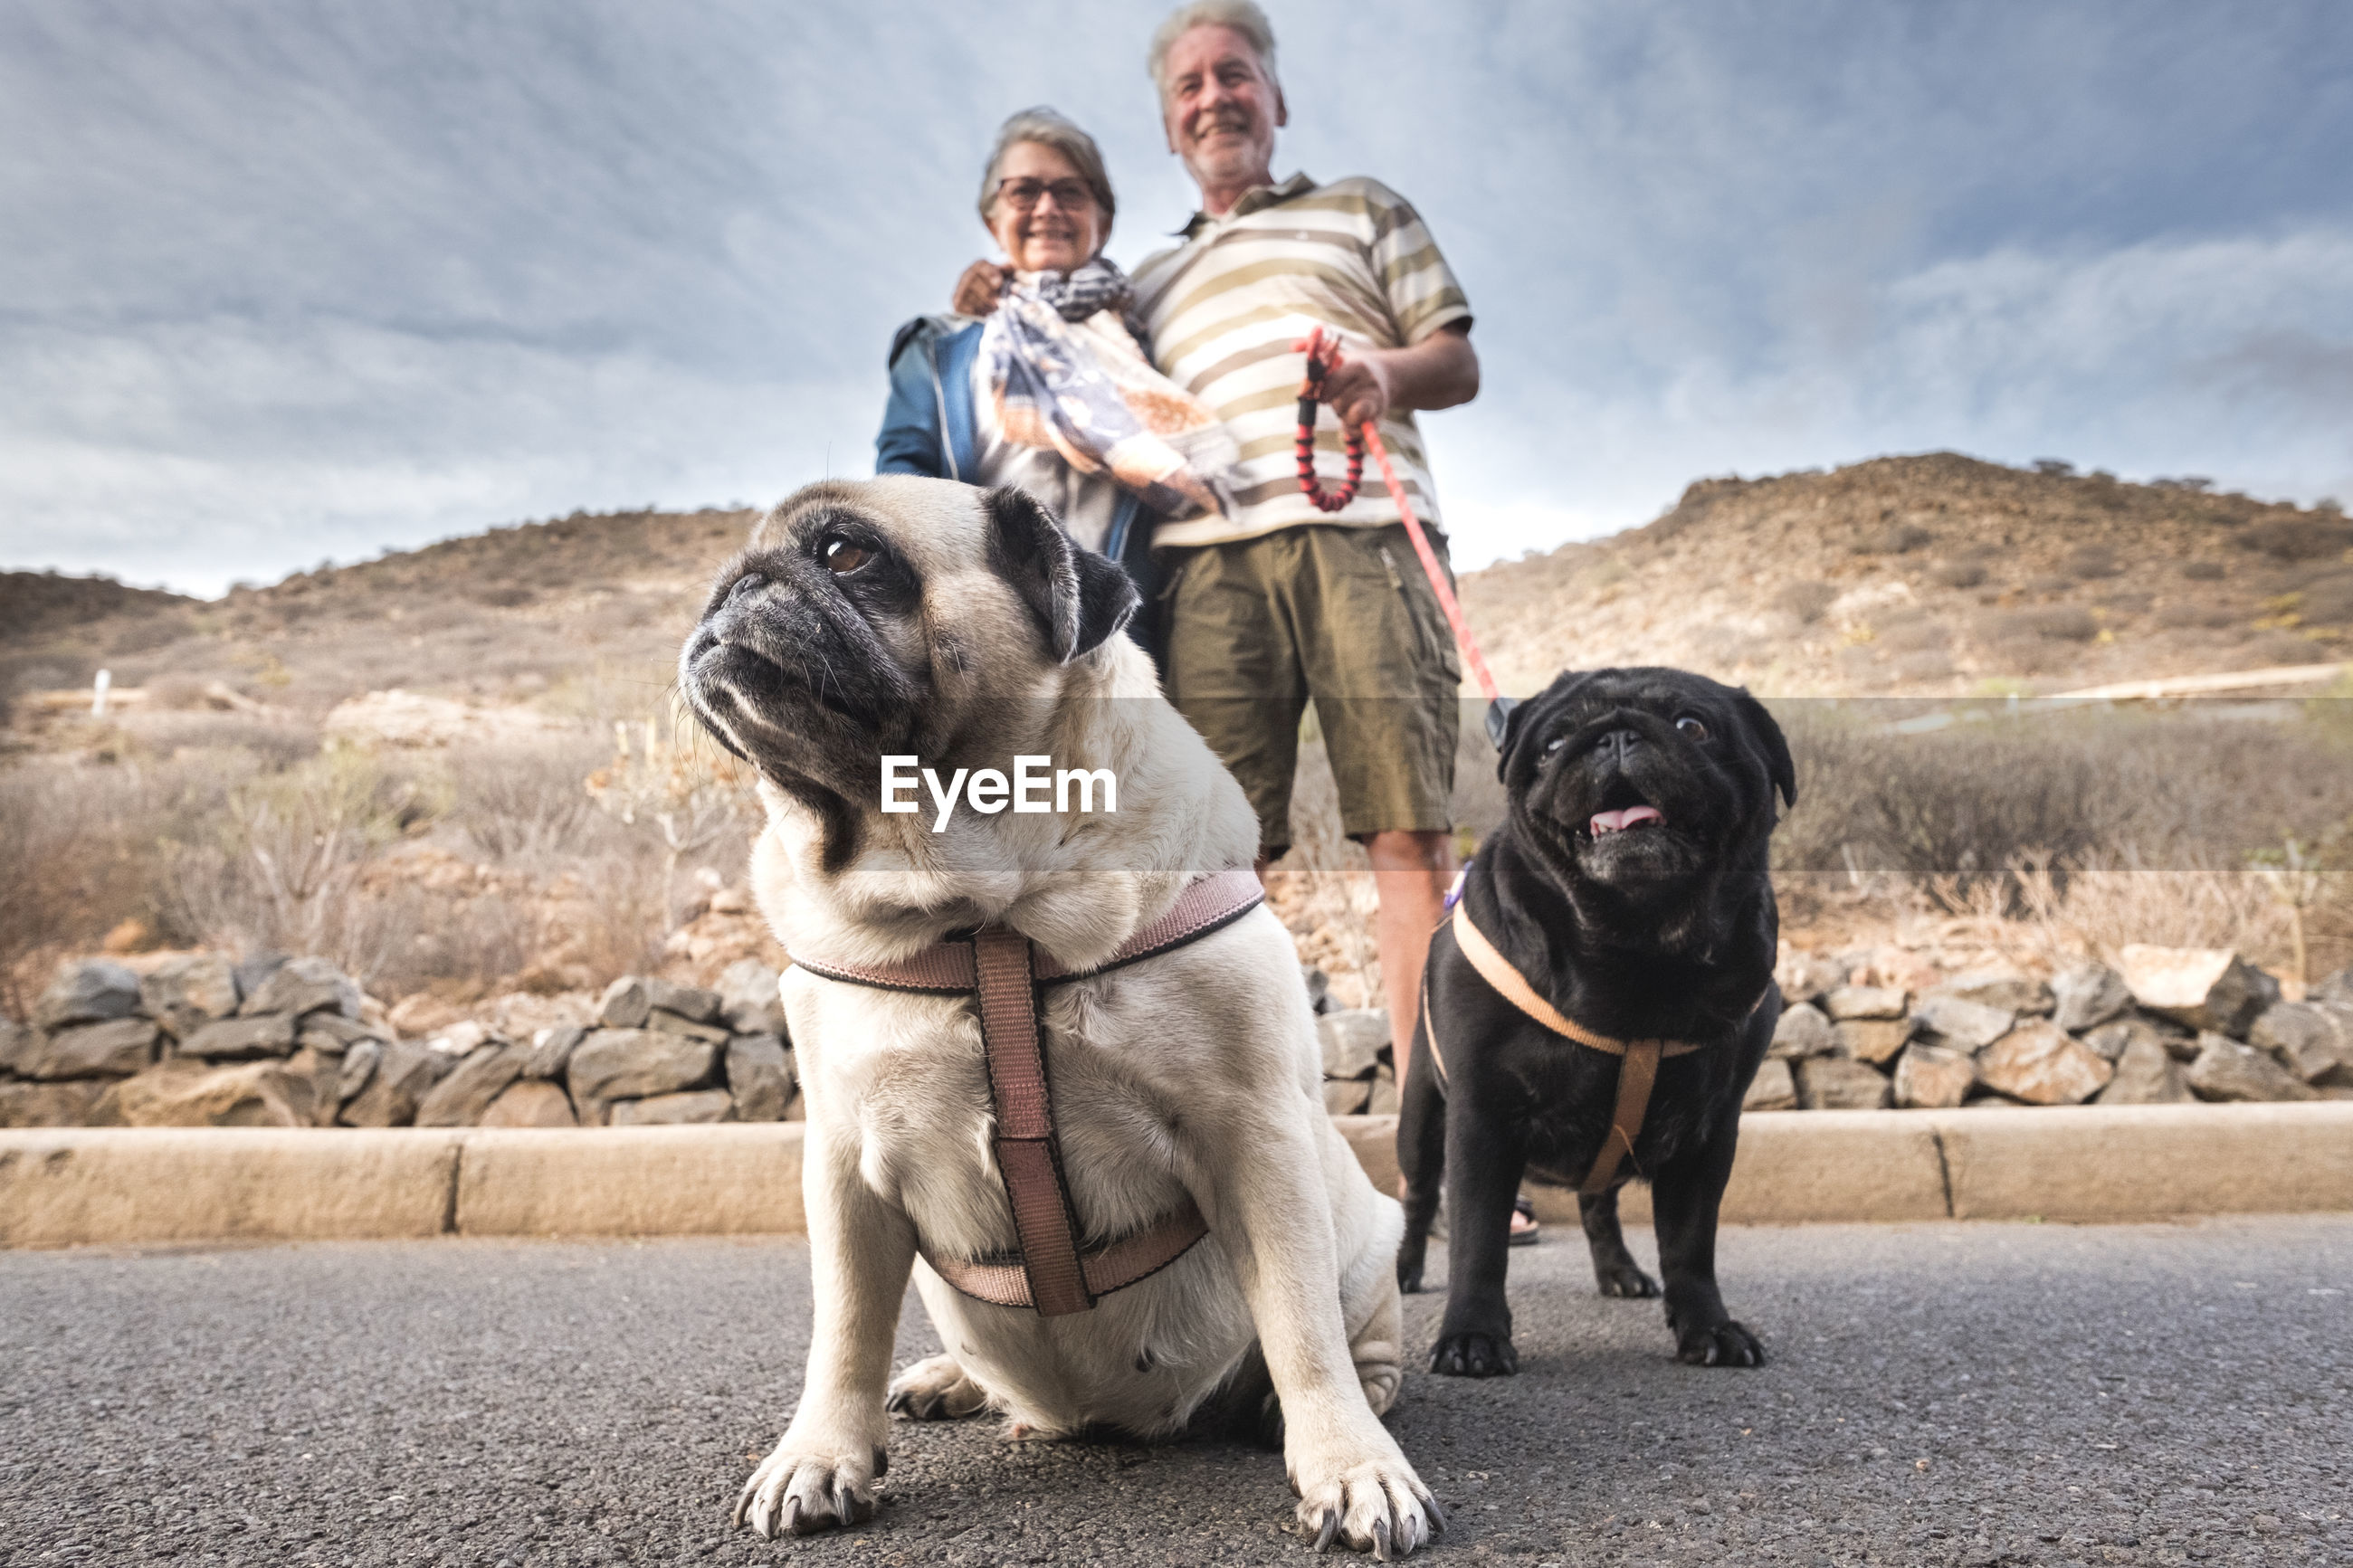 Senior couple with dogs on road